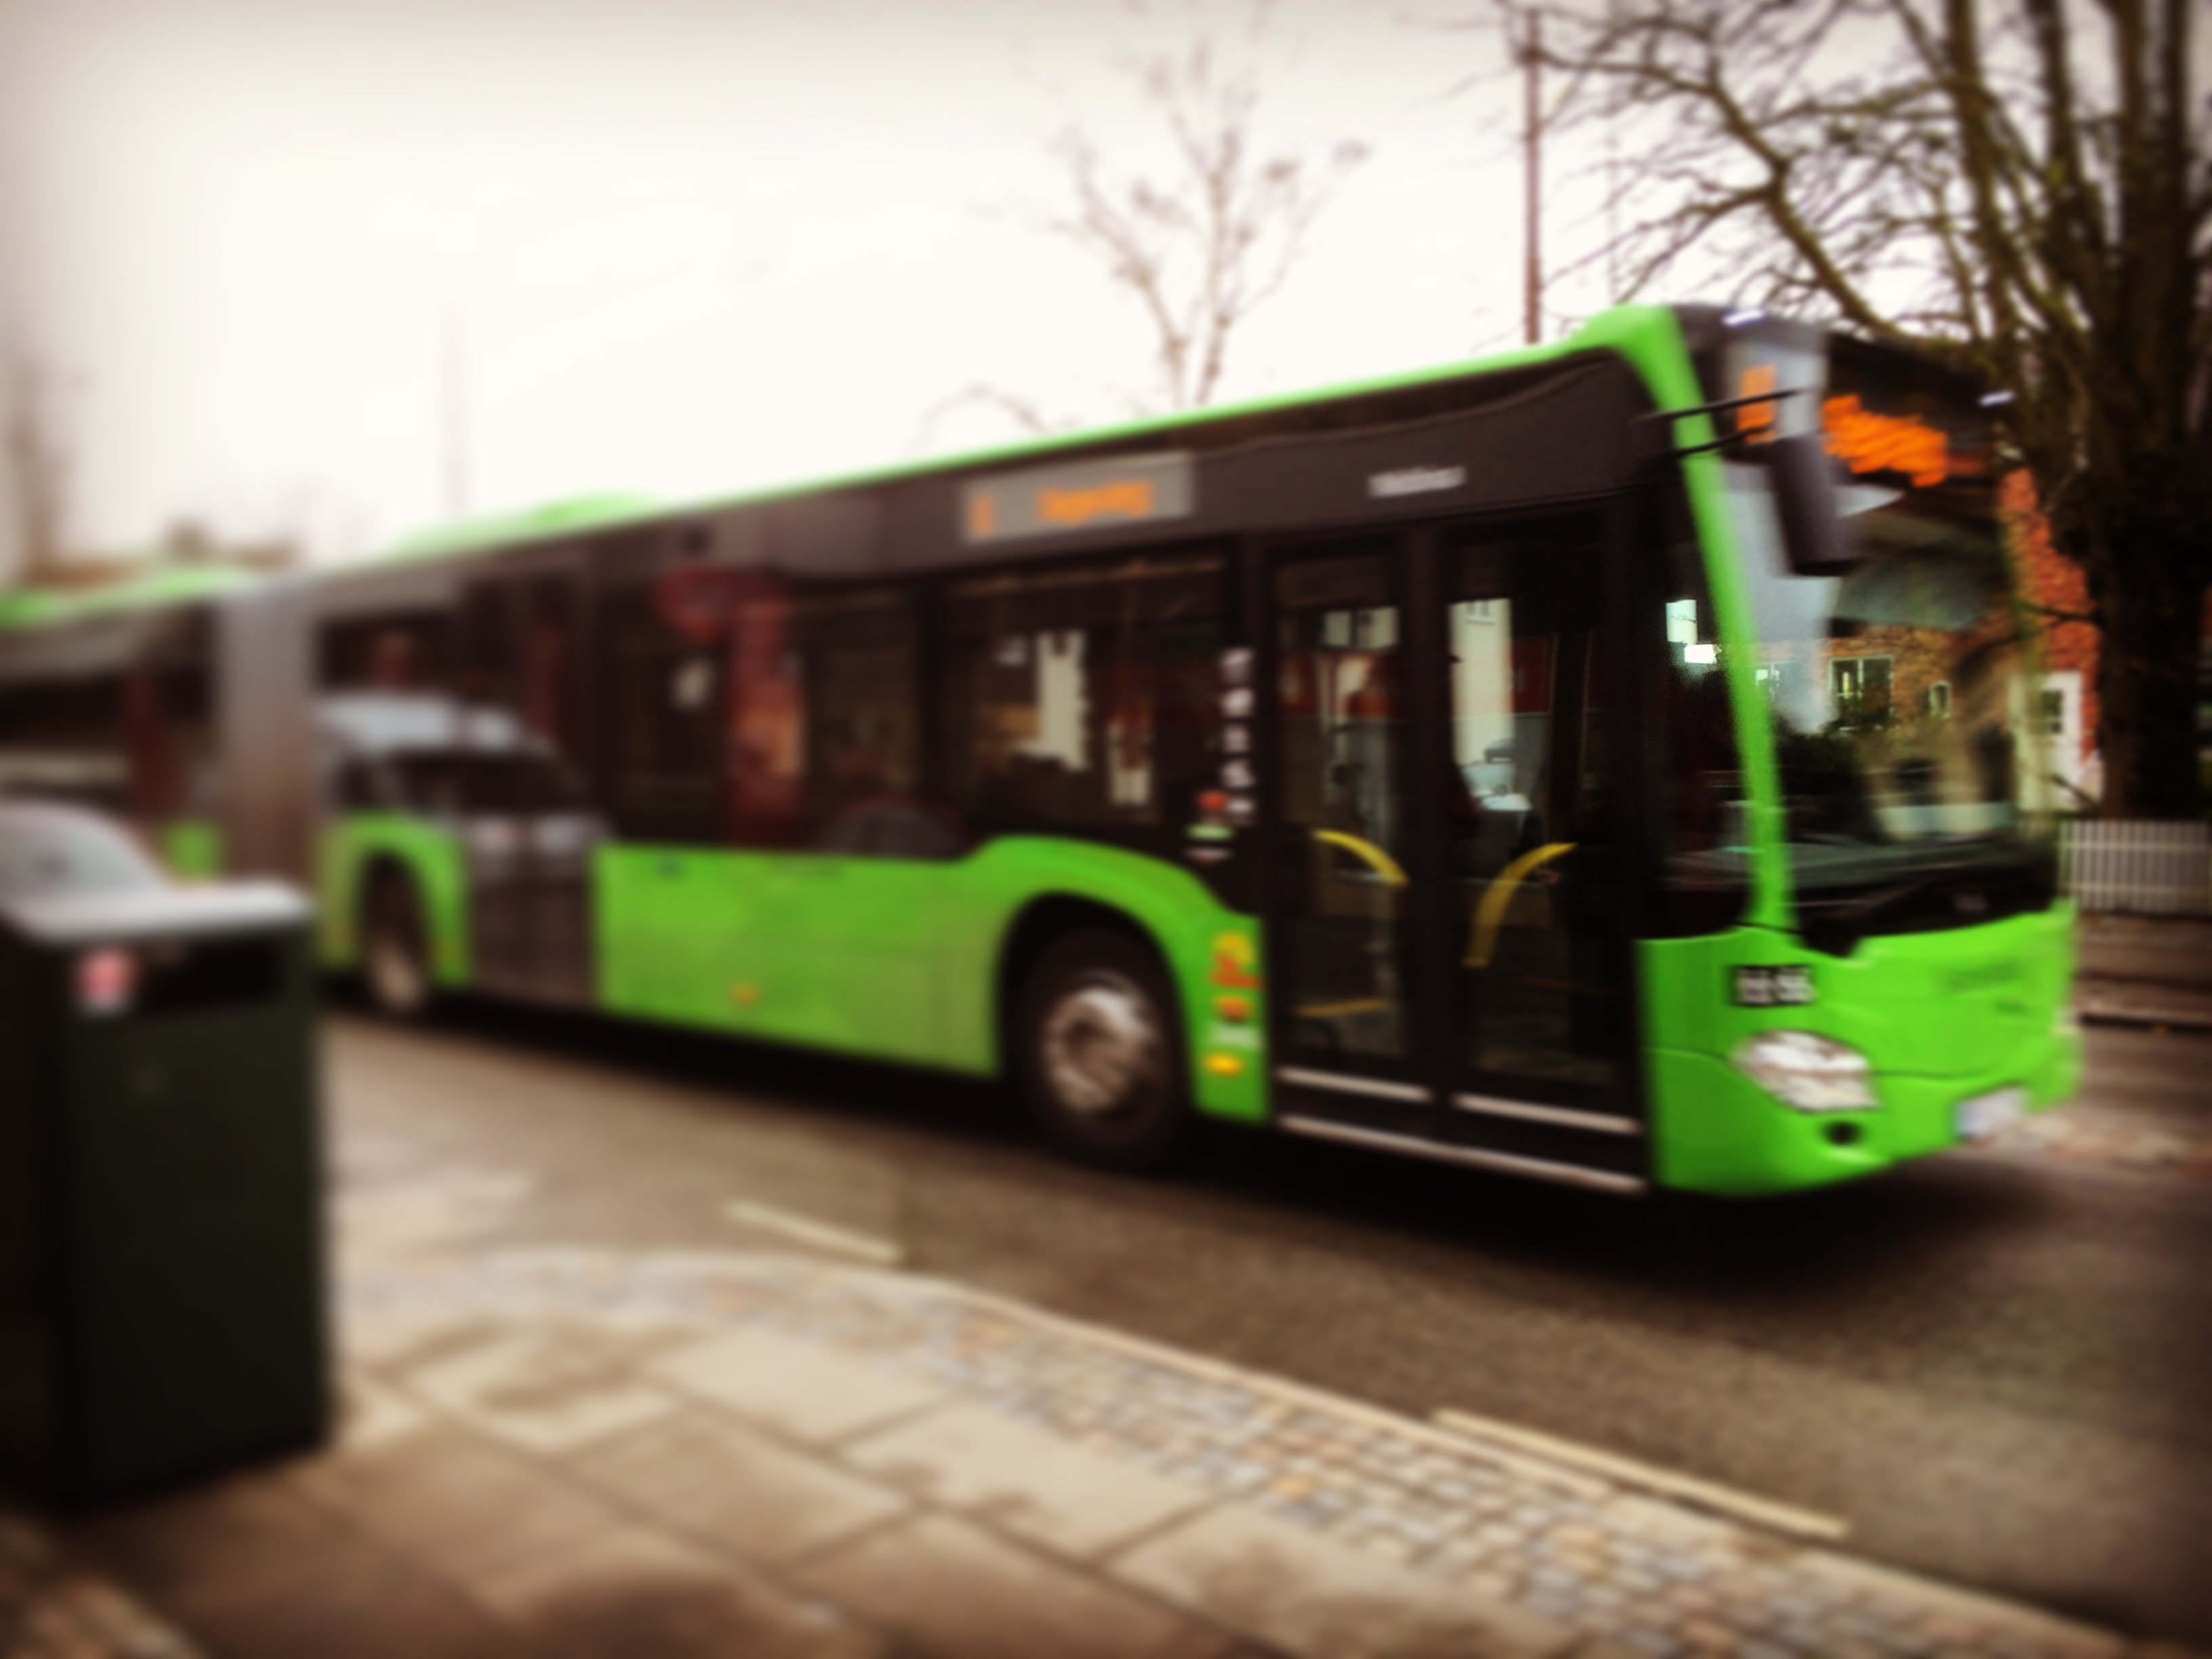 Biogas buses running in Sweden